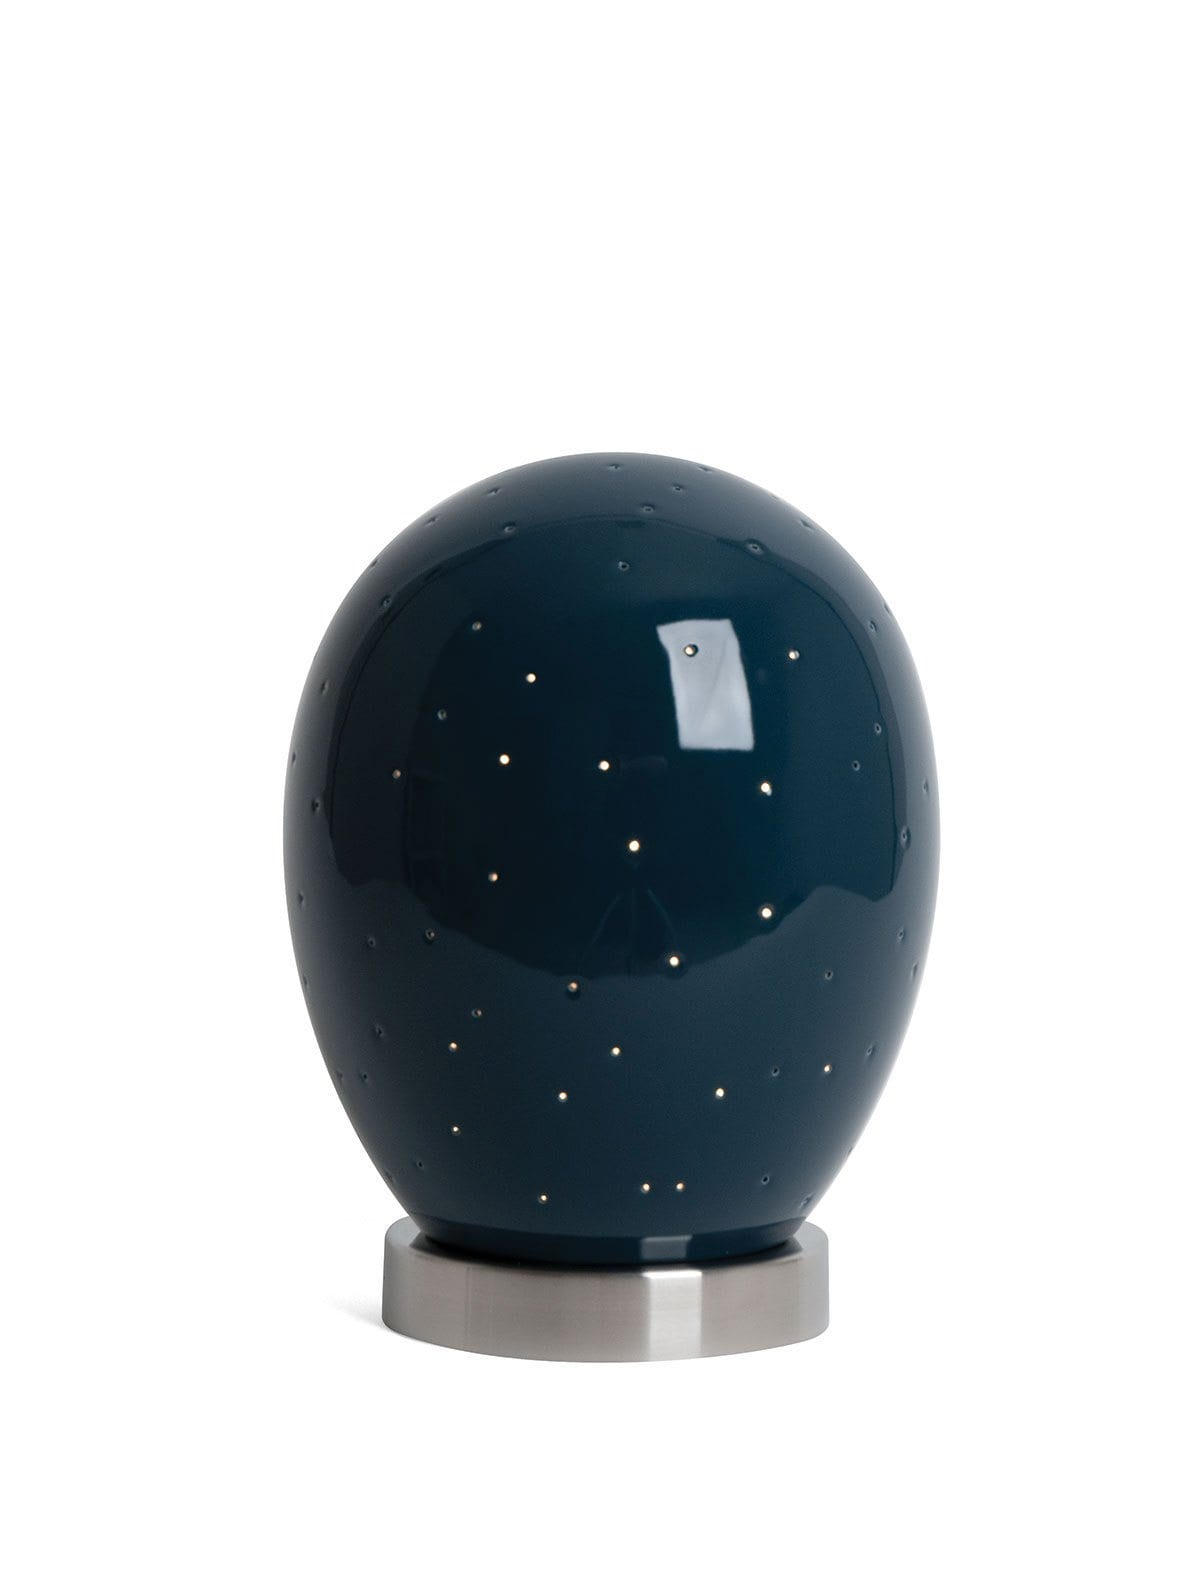 J SCHATZ Star Egg Nightlight - huggle